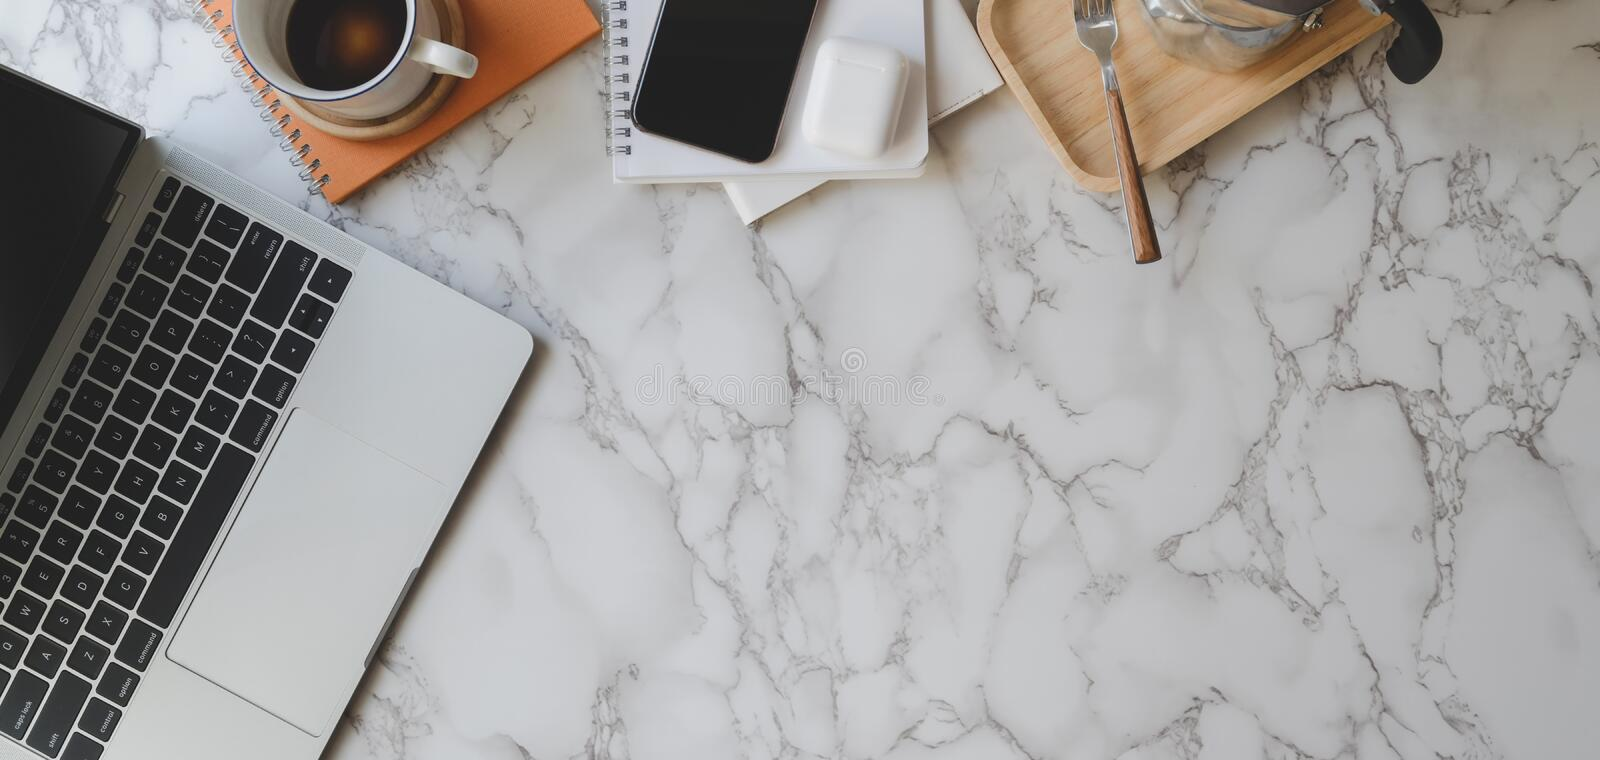 Top view of stylish workspace with laptop computer and office supplies on marble desk royalty free stock photography